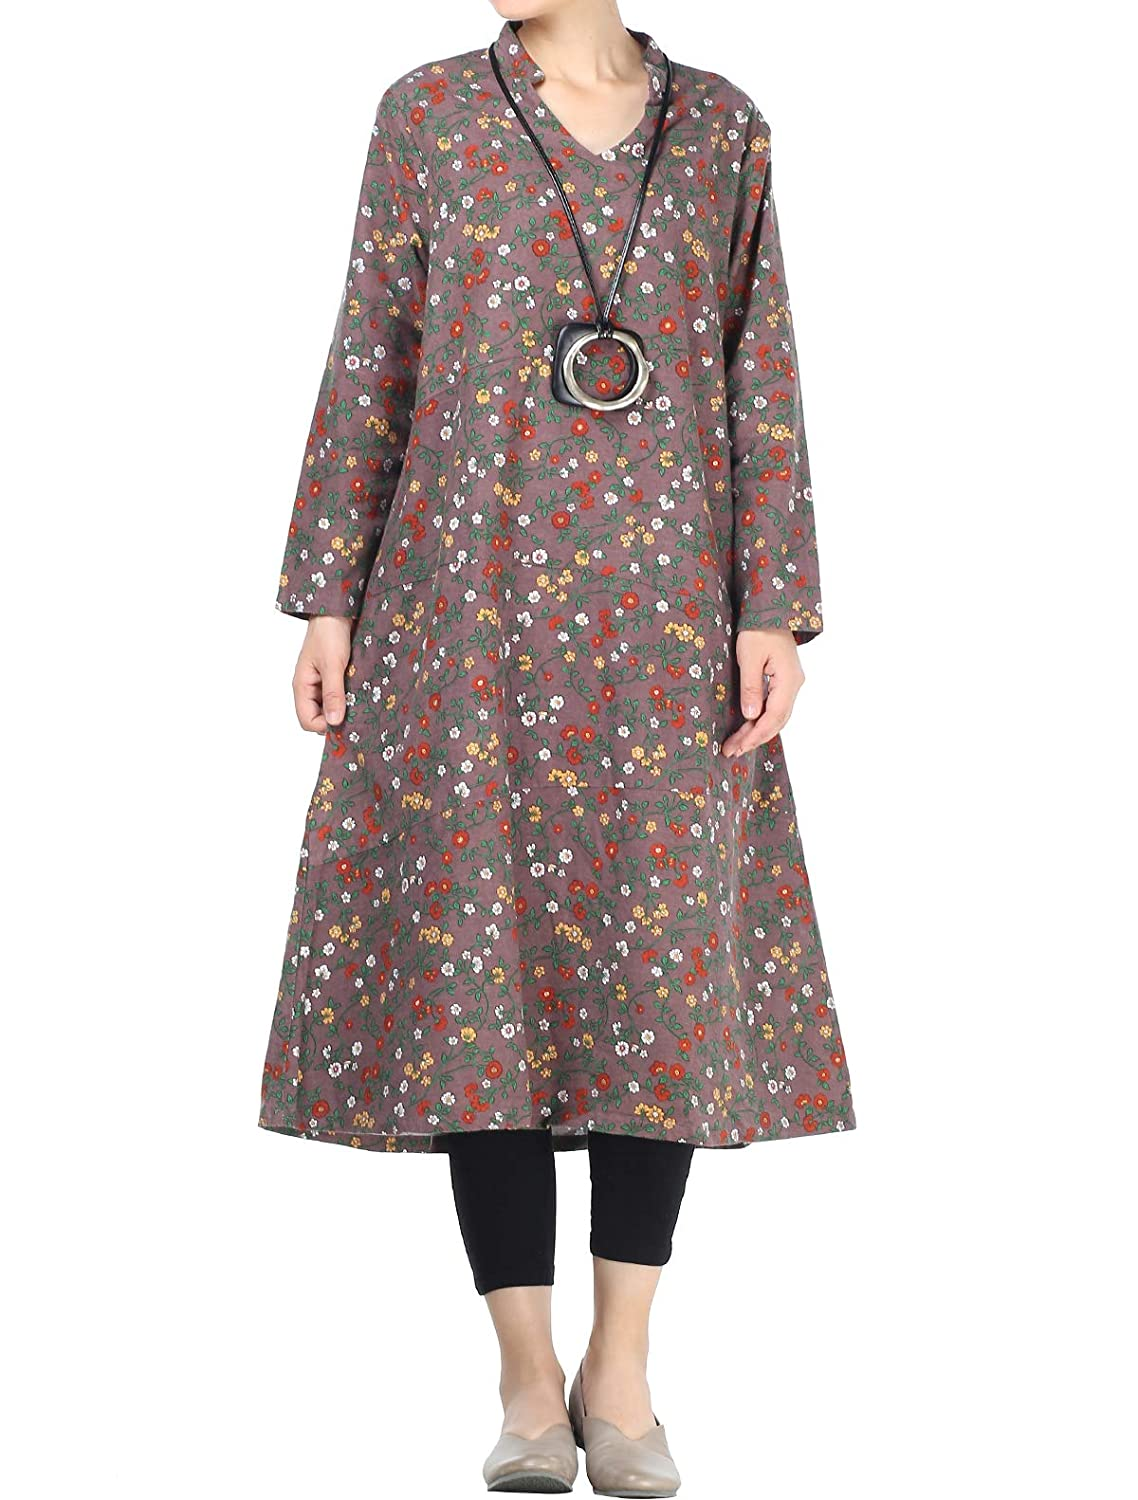 Mordenmiss Style APPAREL Mordenmiss レディース B07GX78DPB Large|Style 2-coffee Style 2-coffee 2-coffee Large, タカグン:43993ad7 --- faculdadeteologicaceia.com.br